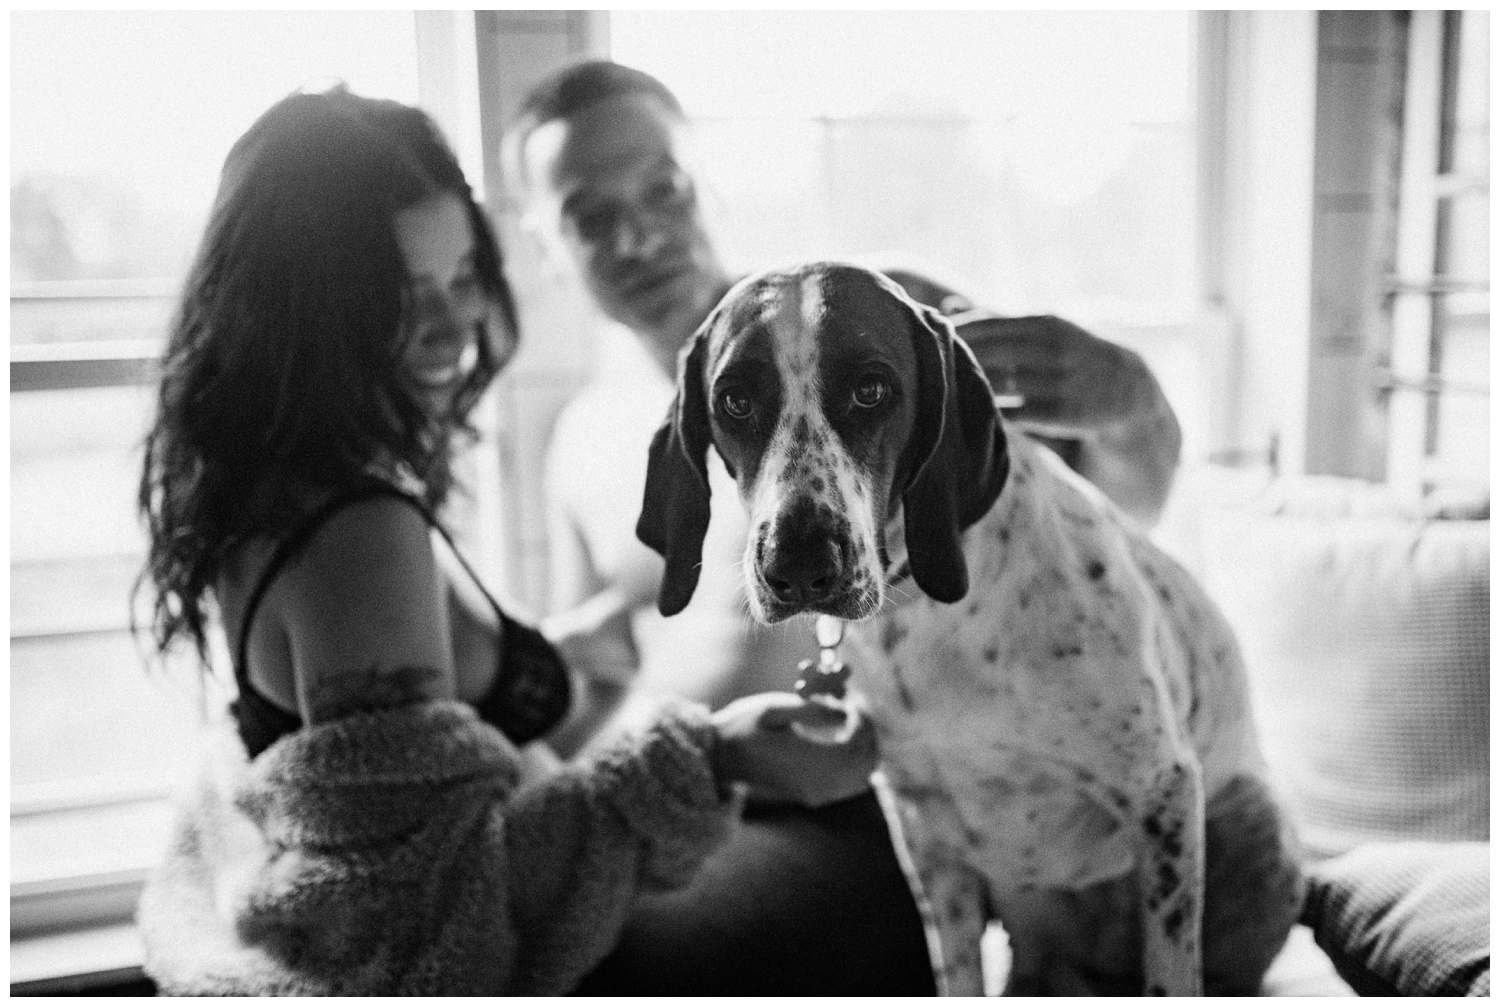 Karla and David Perez Maternity Photoshoot at Home with jenFAIRCHILD Photography in Hudson Valley New York_0019.jpg